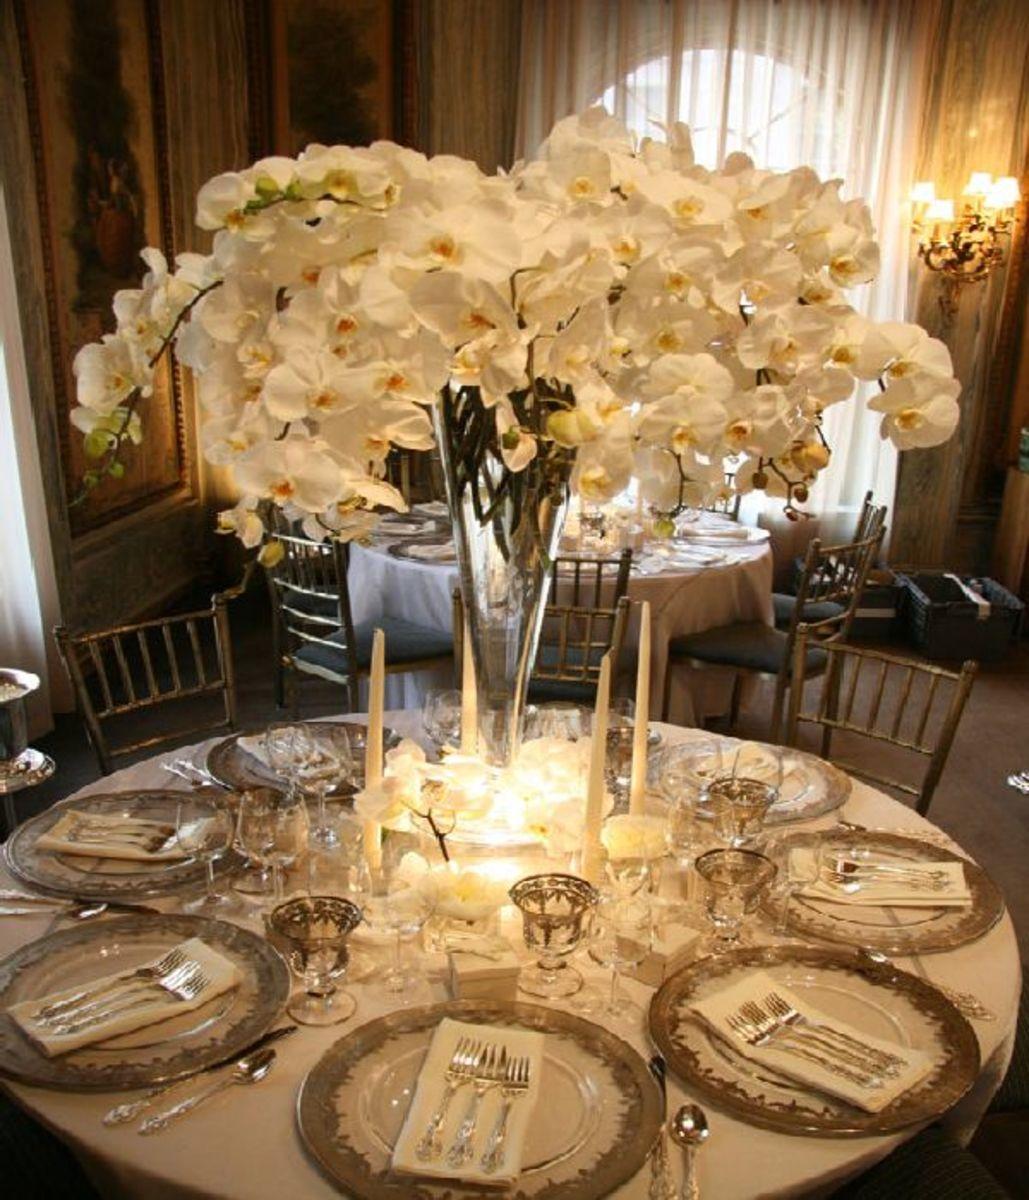 20 photos of wedding table d cor ideas creative table Best table decoration ideas